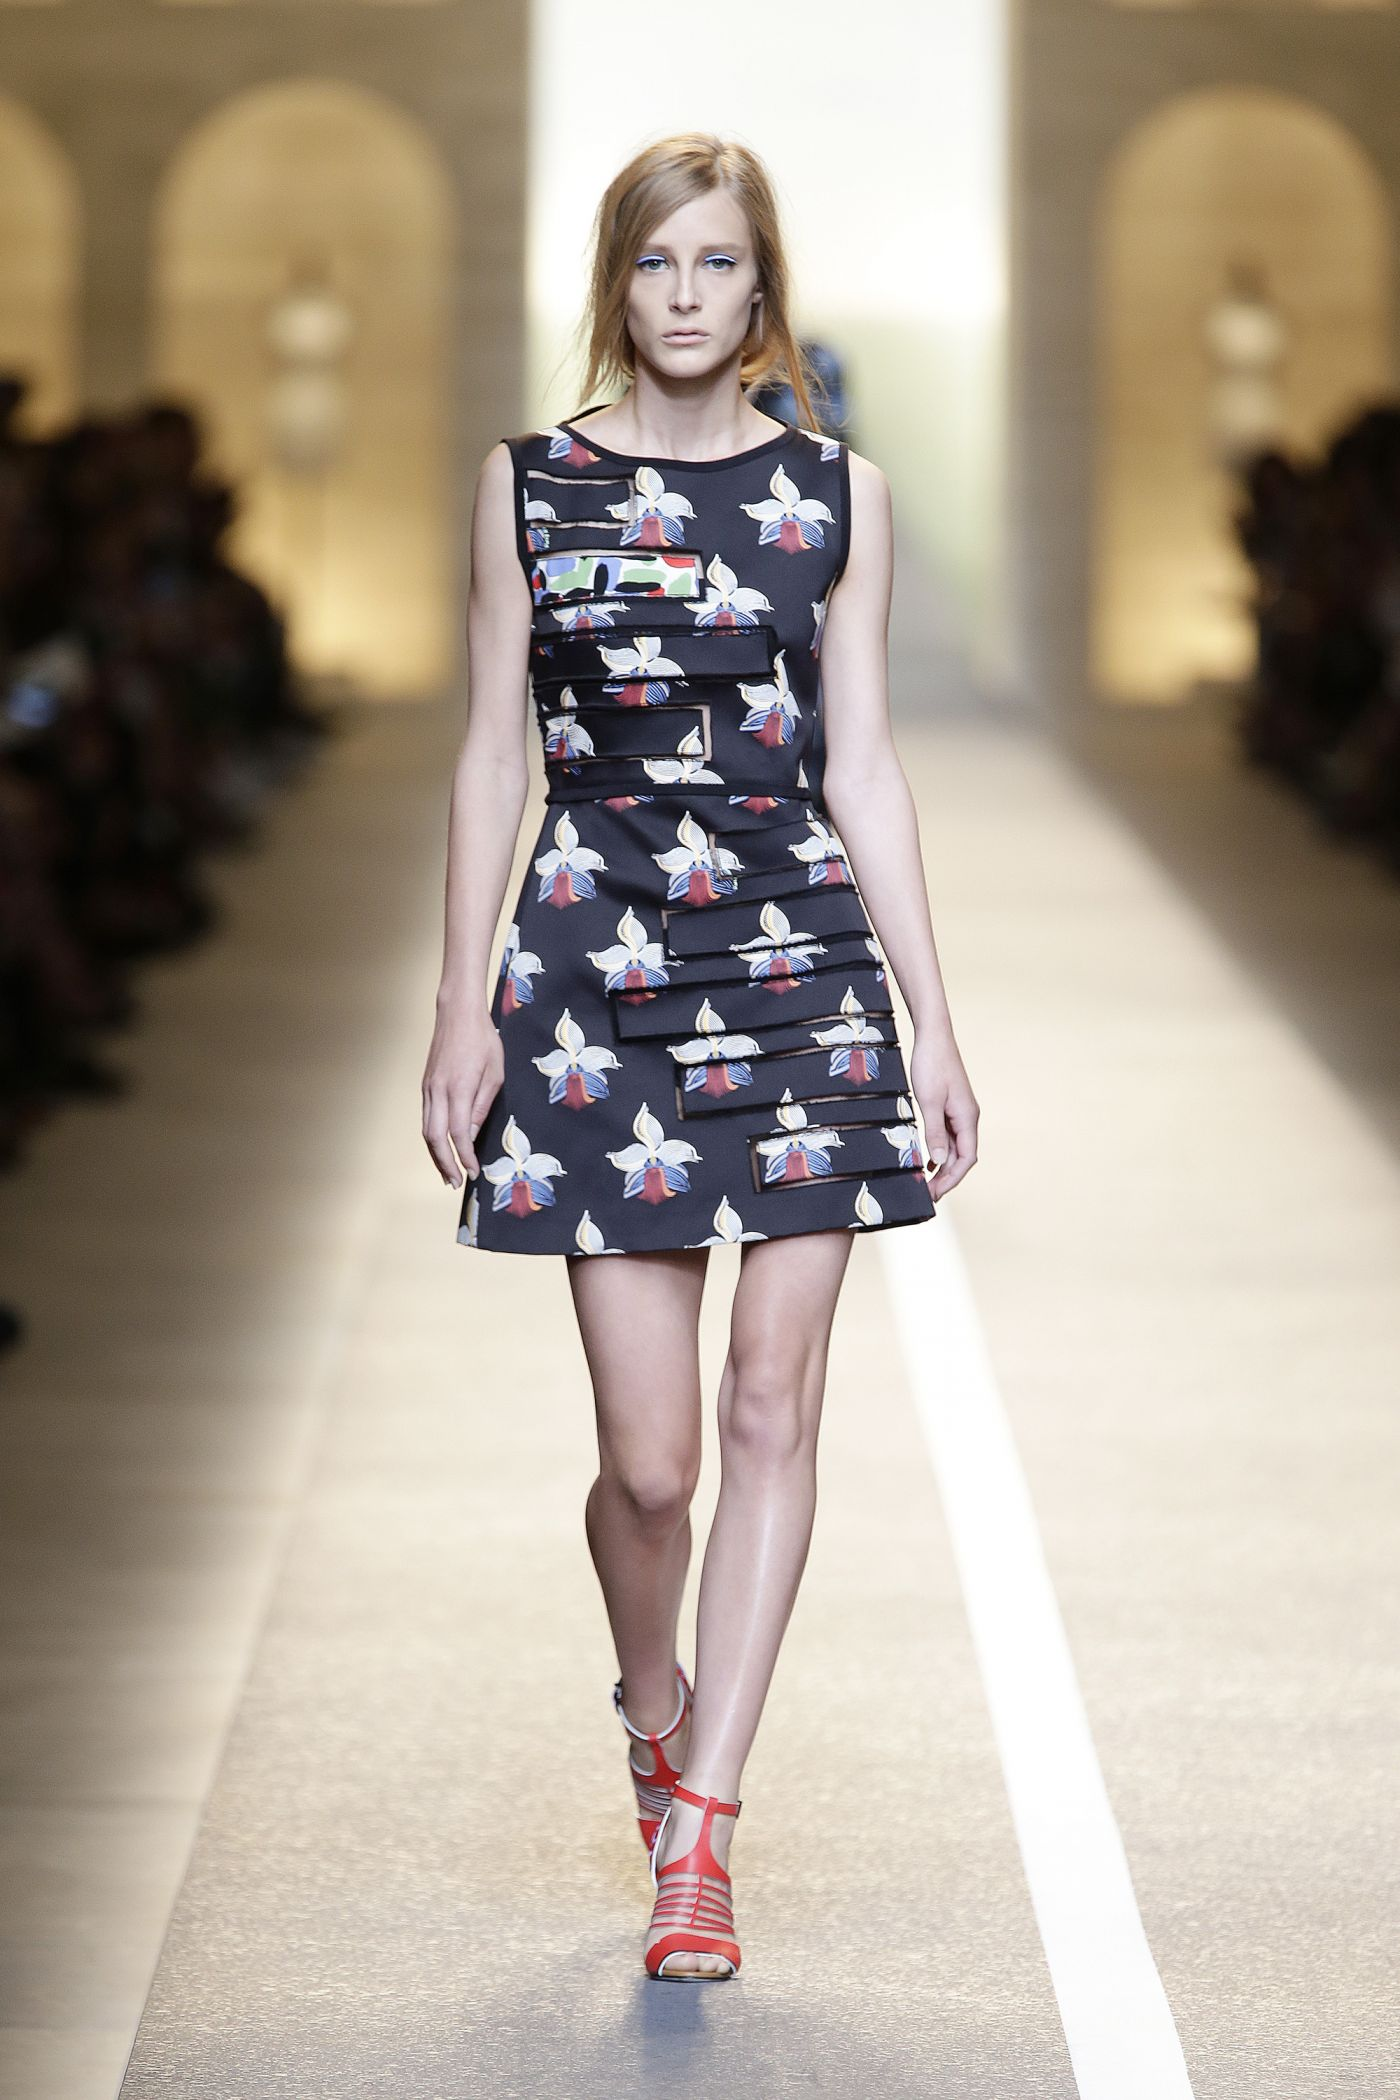 Fendi spring summer 2015 orchid motif outfit